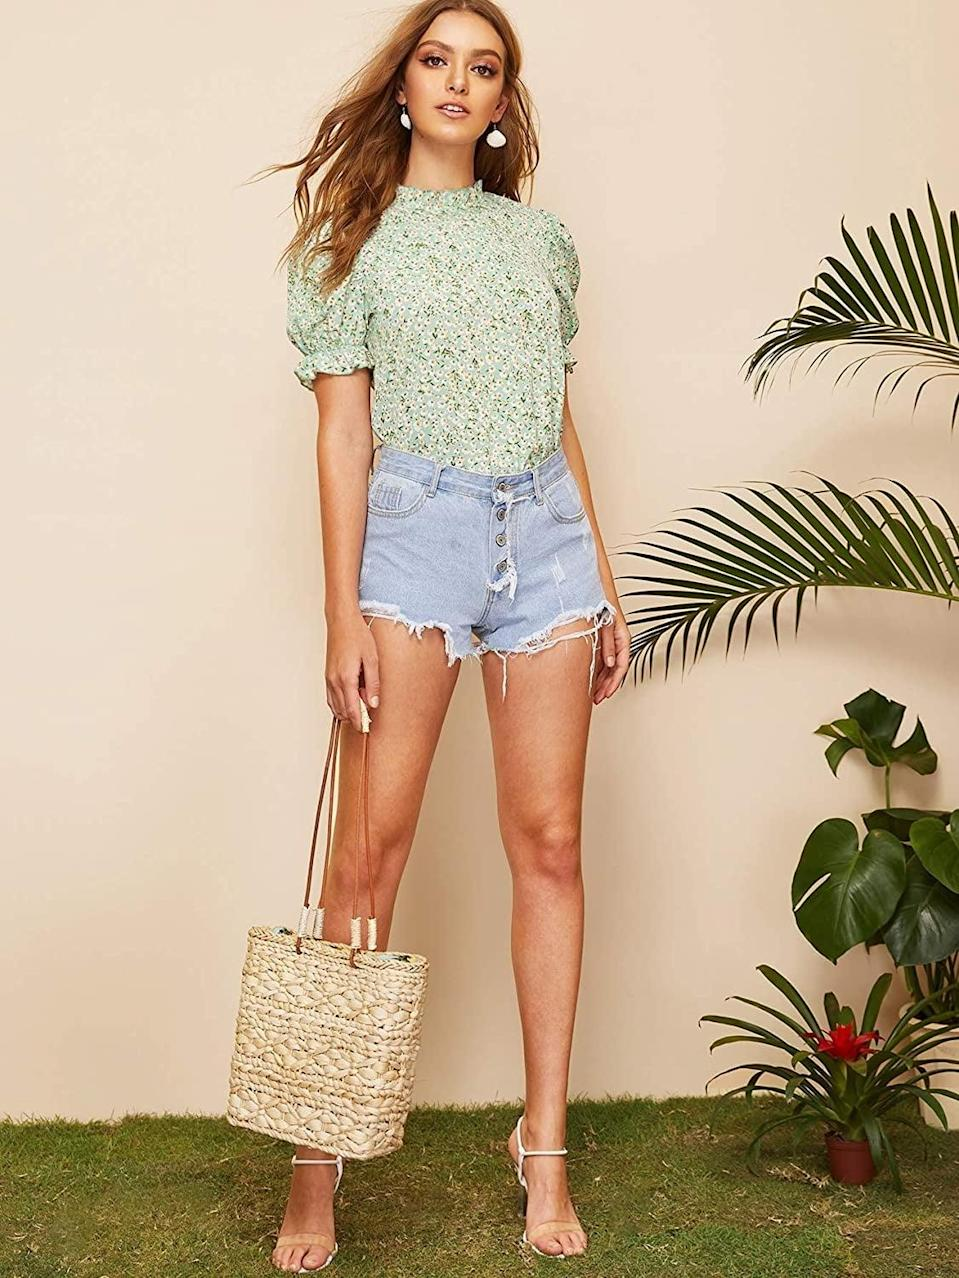 <p>Take this <span>Romwe Floral Print Top</span> ($18) on your next warm vacation.</p>